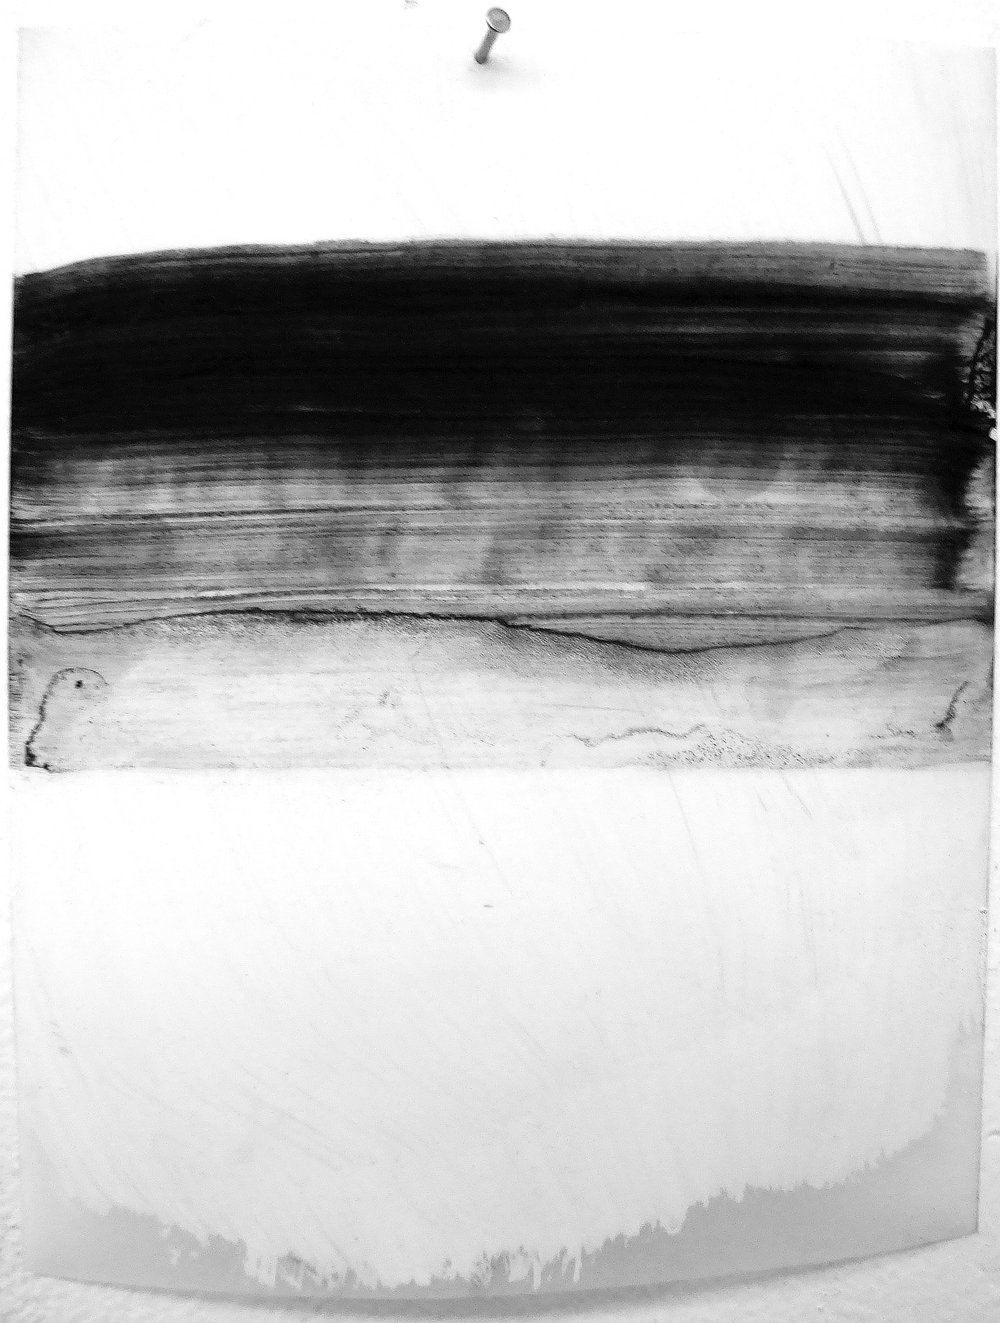 N.o 7, charcoal and gesso on mylar, 2012